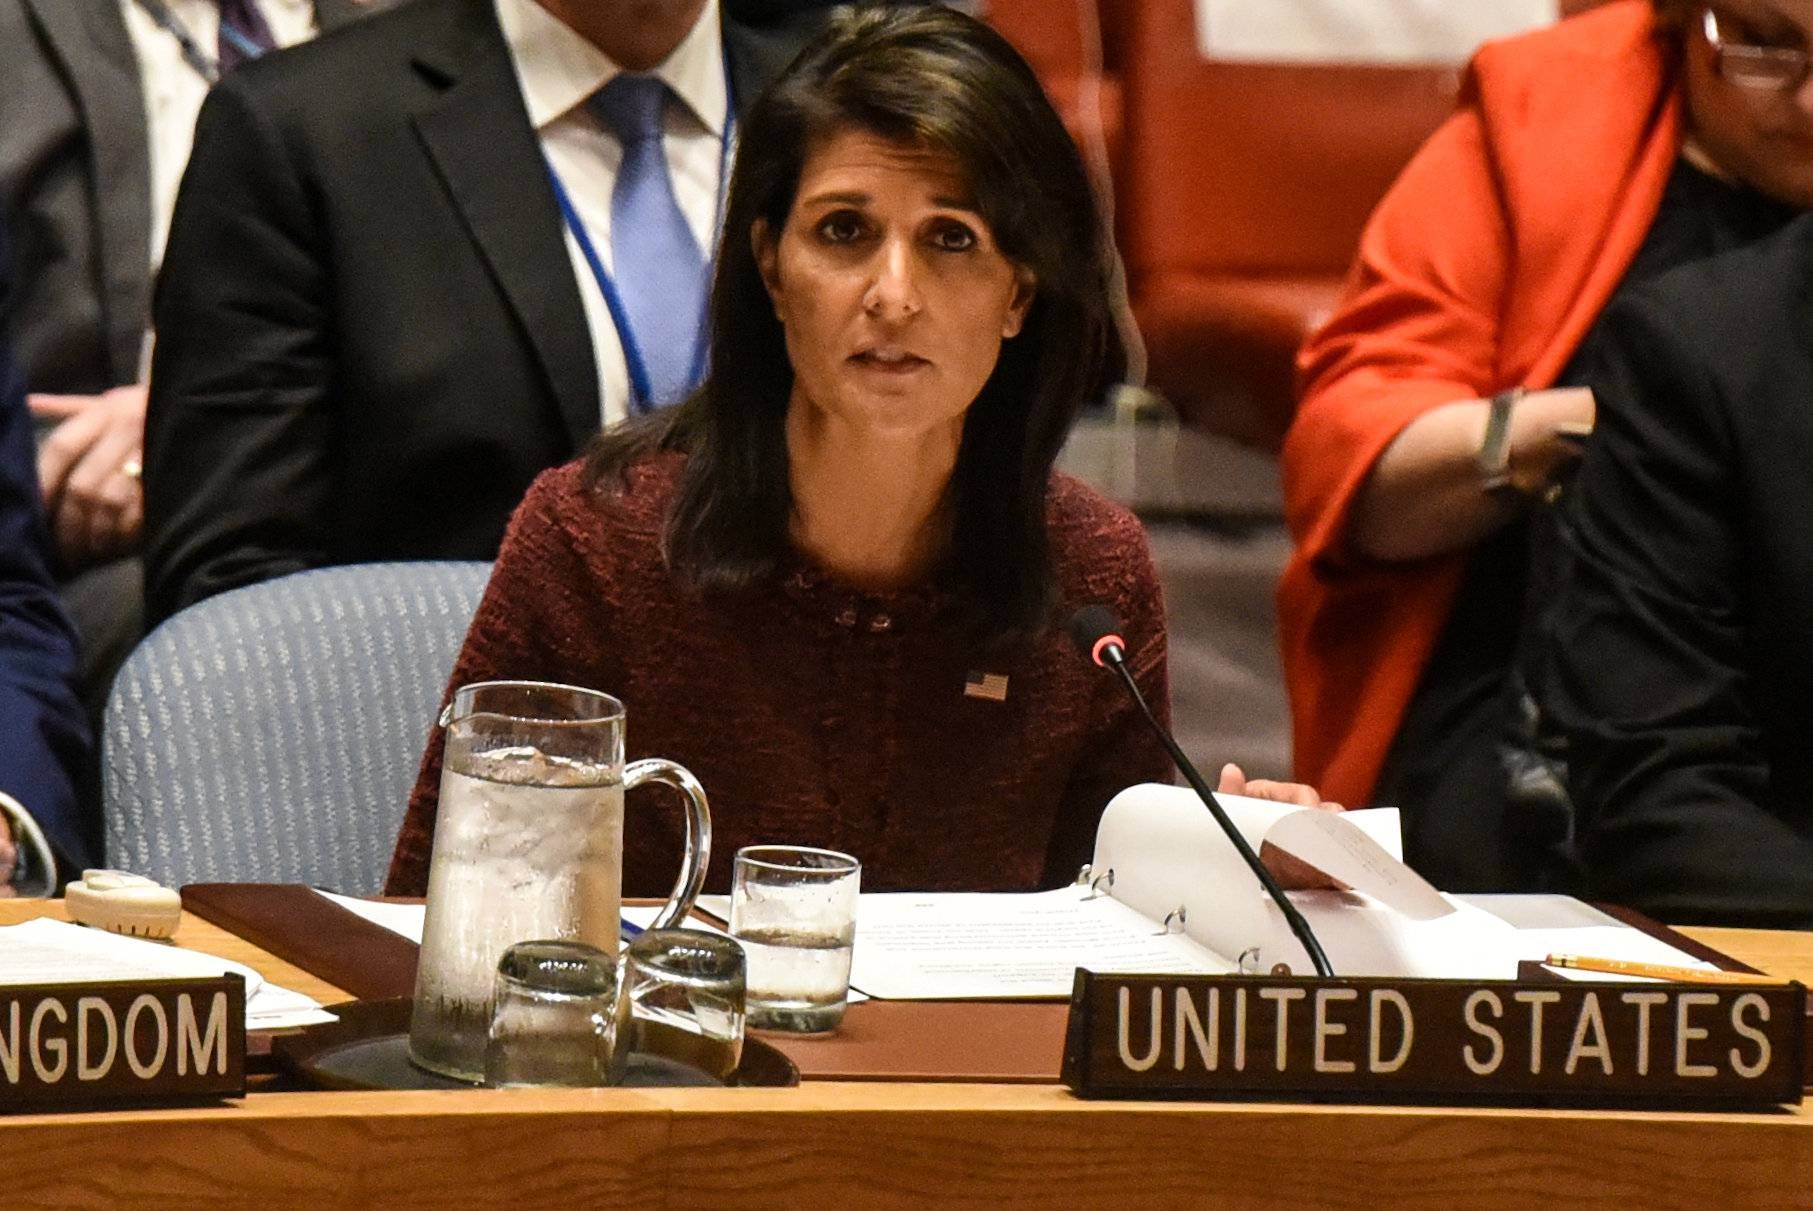 U.S. Ambassador to the United Nations Nikki Haley delivers remarks at a security council meeting at U.N. headquarters during the United Nations General Assembly in New York City